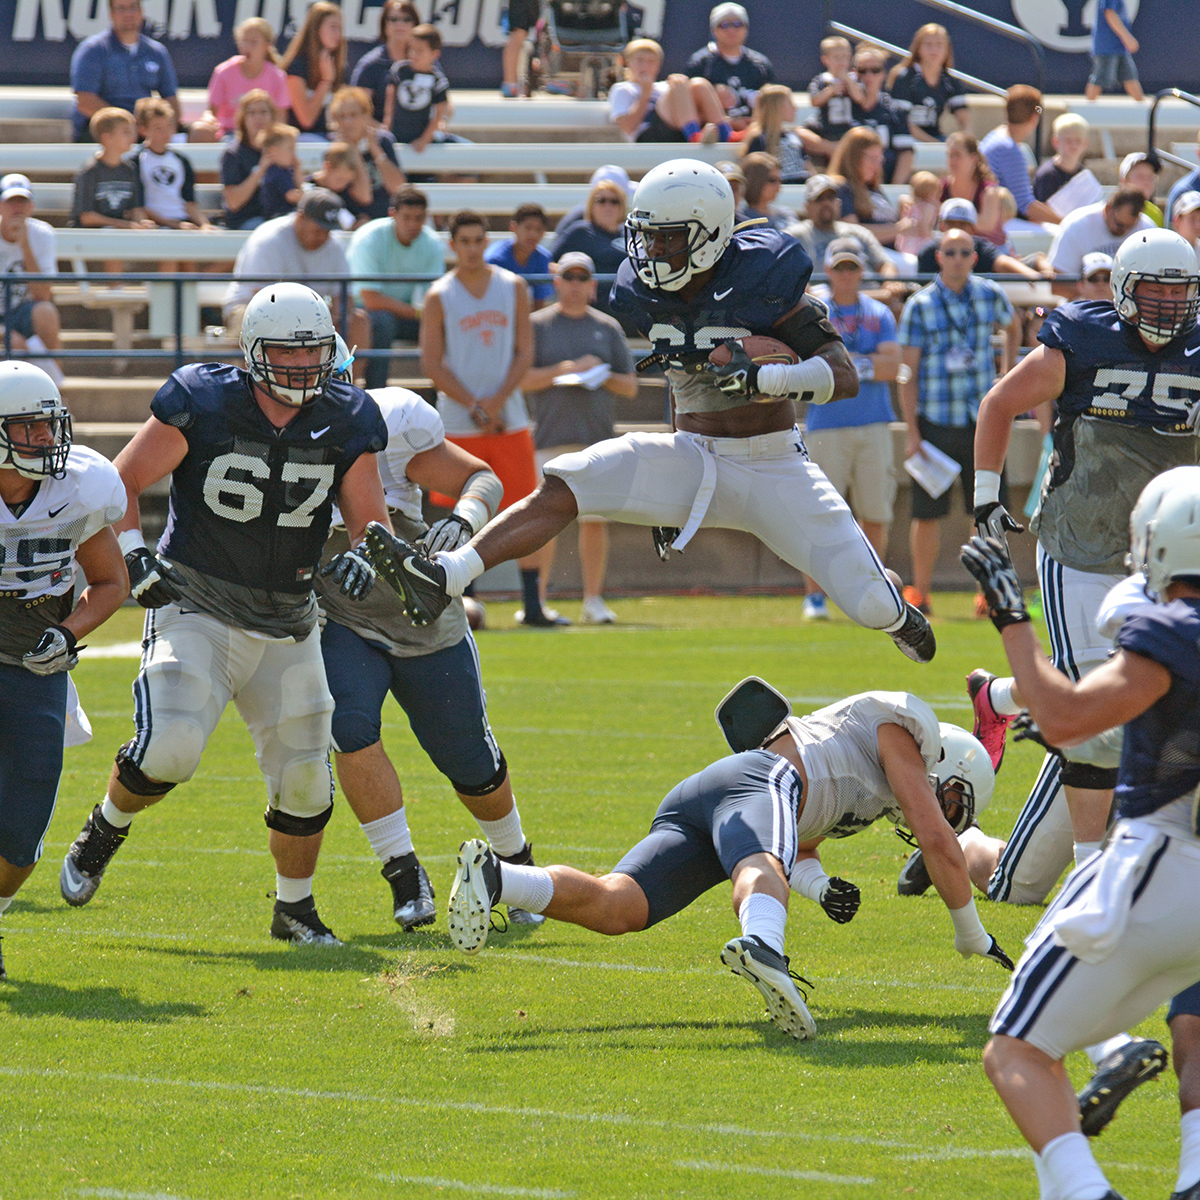 Junior running back Adam Hine gave the 5,000 BYU fans on hand Saturday a thrill when he hurdled defensive back Kai Nacua.